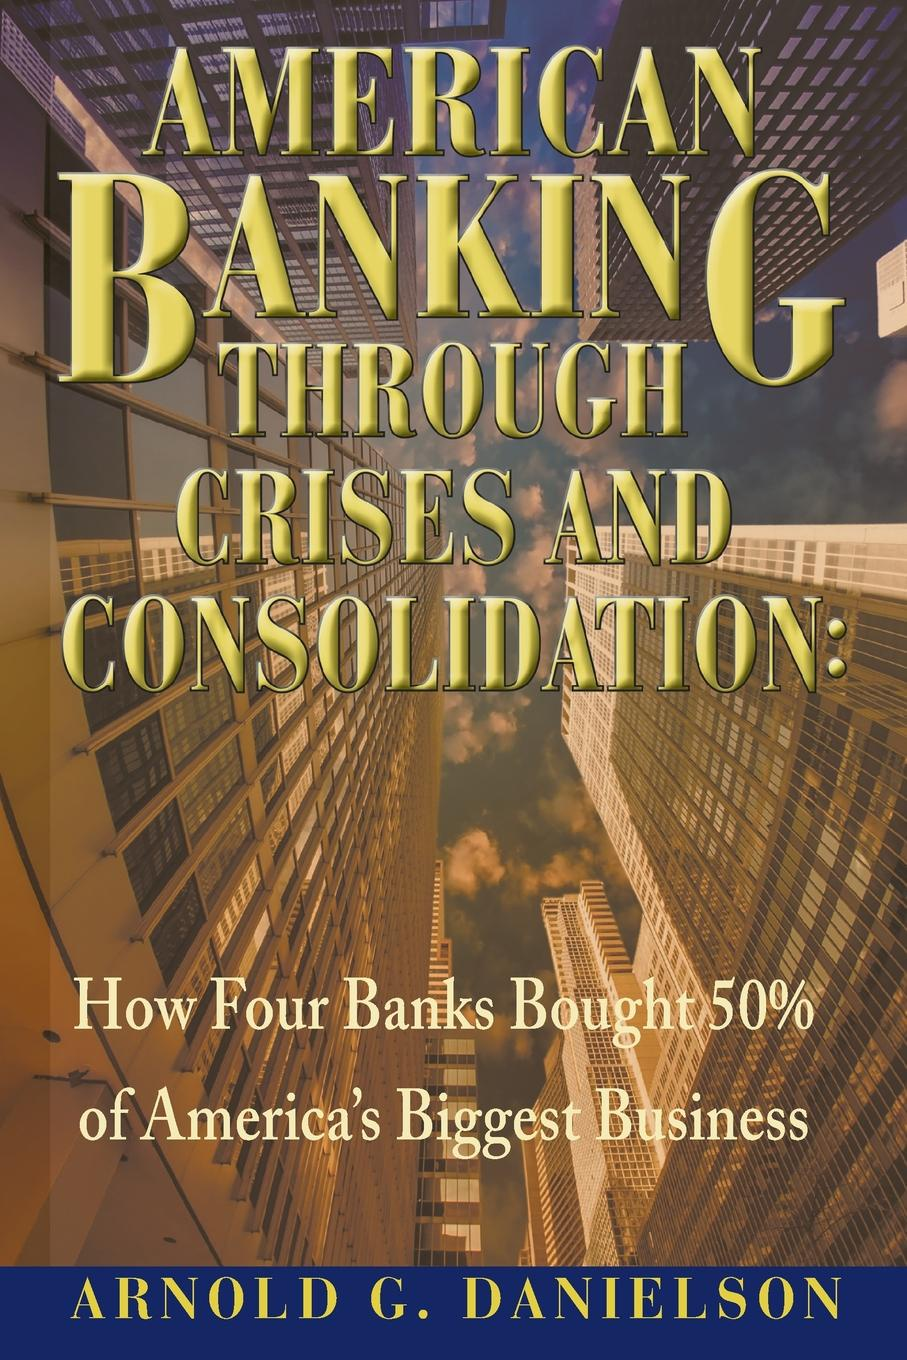 Arnold G. Danielson American Banking Through Crises and Consolidation. How Four Banks Bought 50% of America's Biggest Business banks george linnaeus the making of william edwards or the story of the bridge of beauty